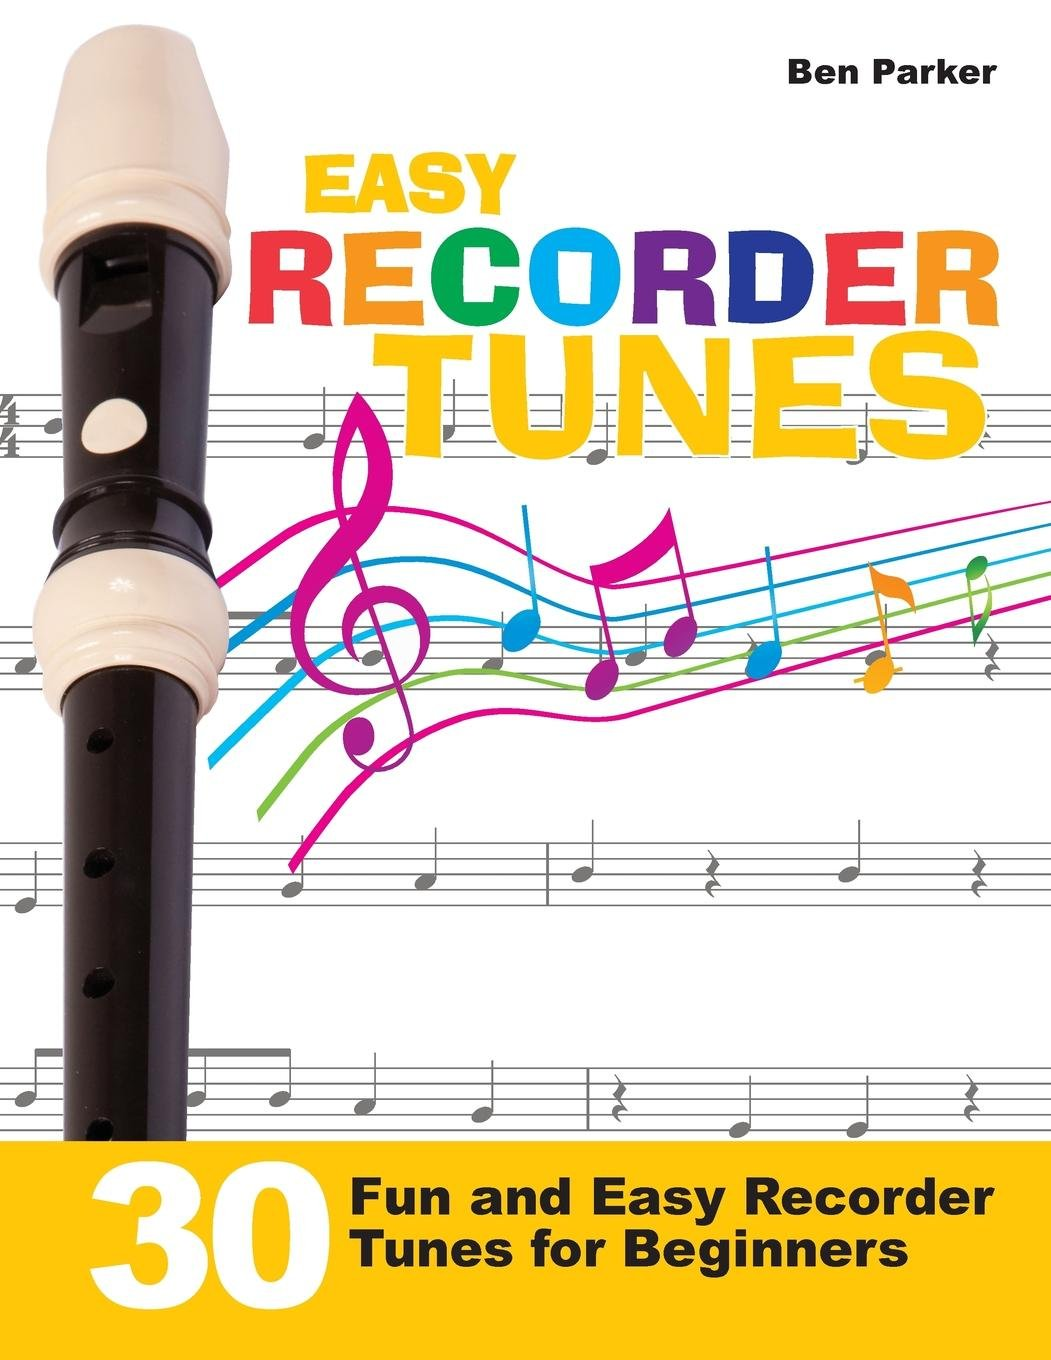 Download Easy Recorder Tunes: 30 Fun and Easy Recorder Tunes for Beginners! pdf